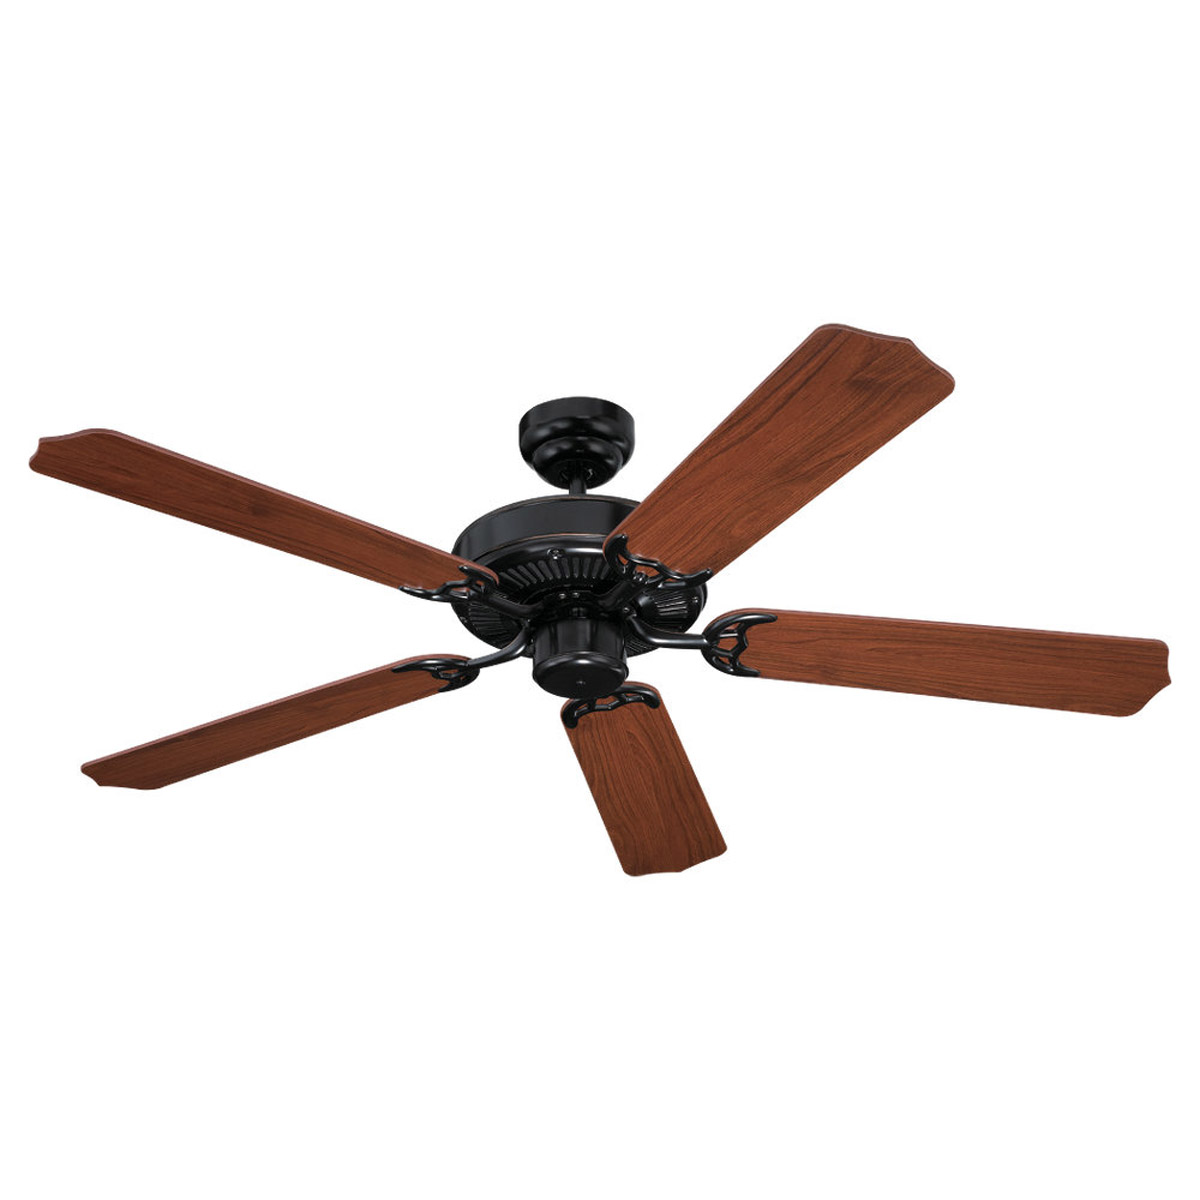 Sea Gull Lighting Quality Max Indoor Ceiling Fan in Vintage Brown 15030-862